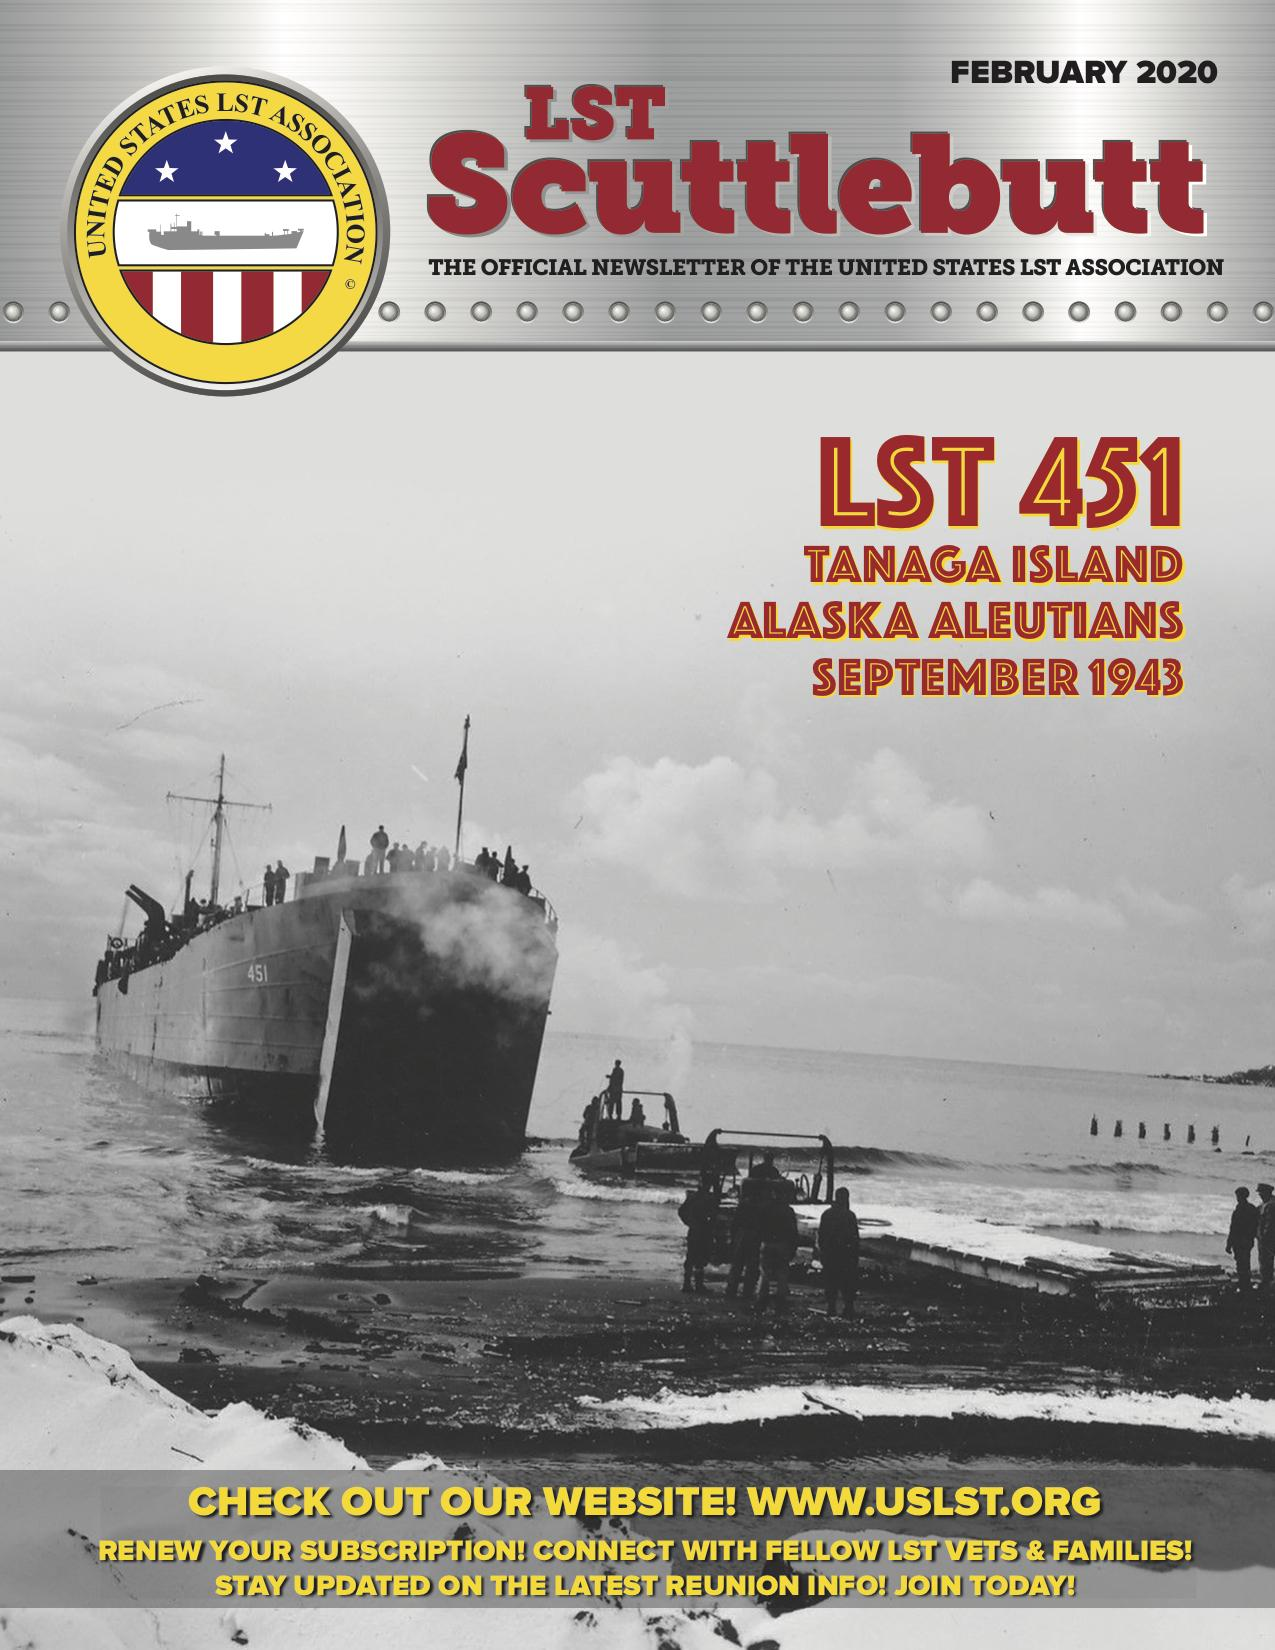 Scuttlebutt Issue 22 February 2020 COVER